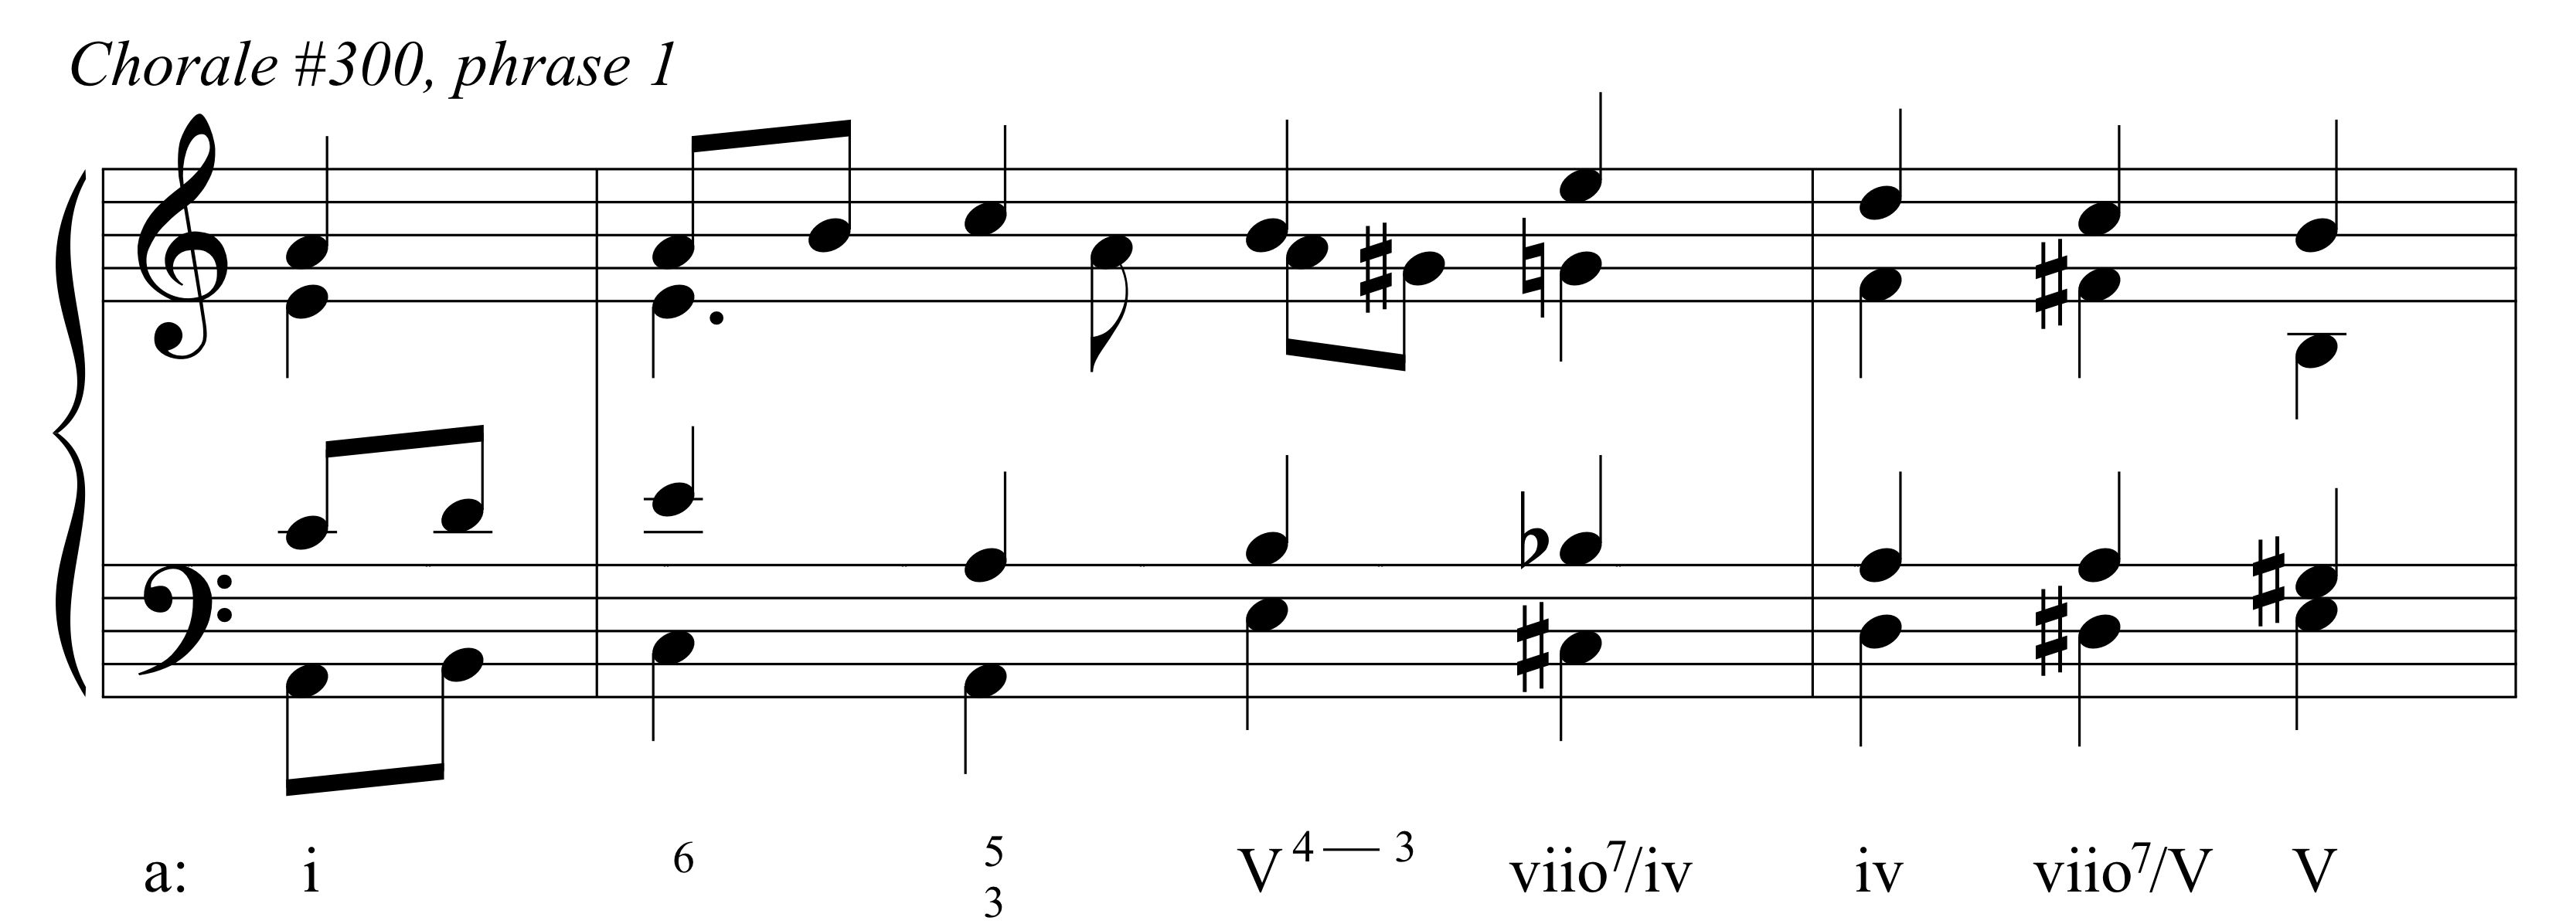 Bachs 12 tone chorale phrases for m is musick simple unembellished secondary leading tone seventh chords introduce the necessary chromatic pitches while the prominent contrapuntal interplay occurs hexwebz Choice Image